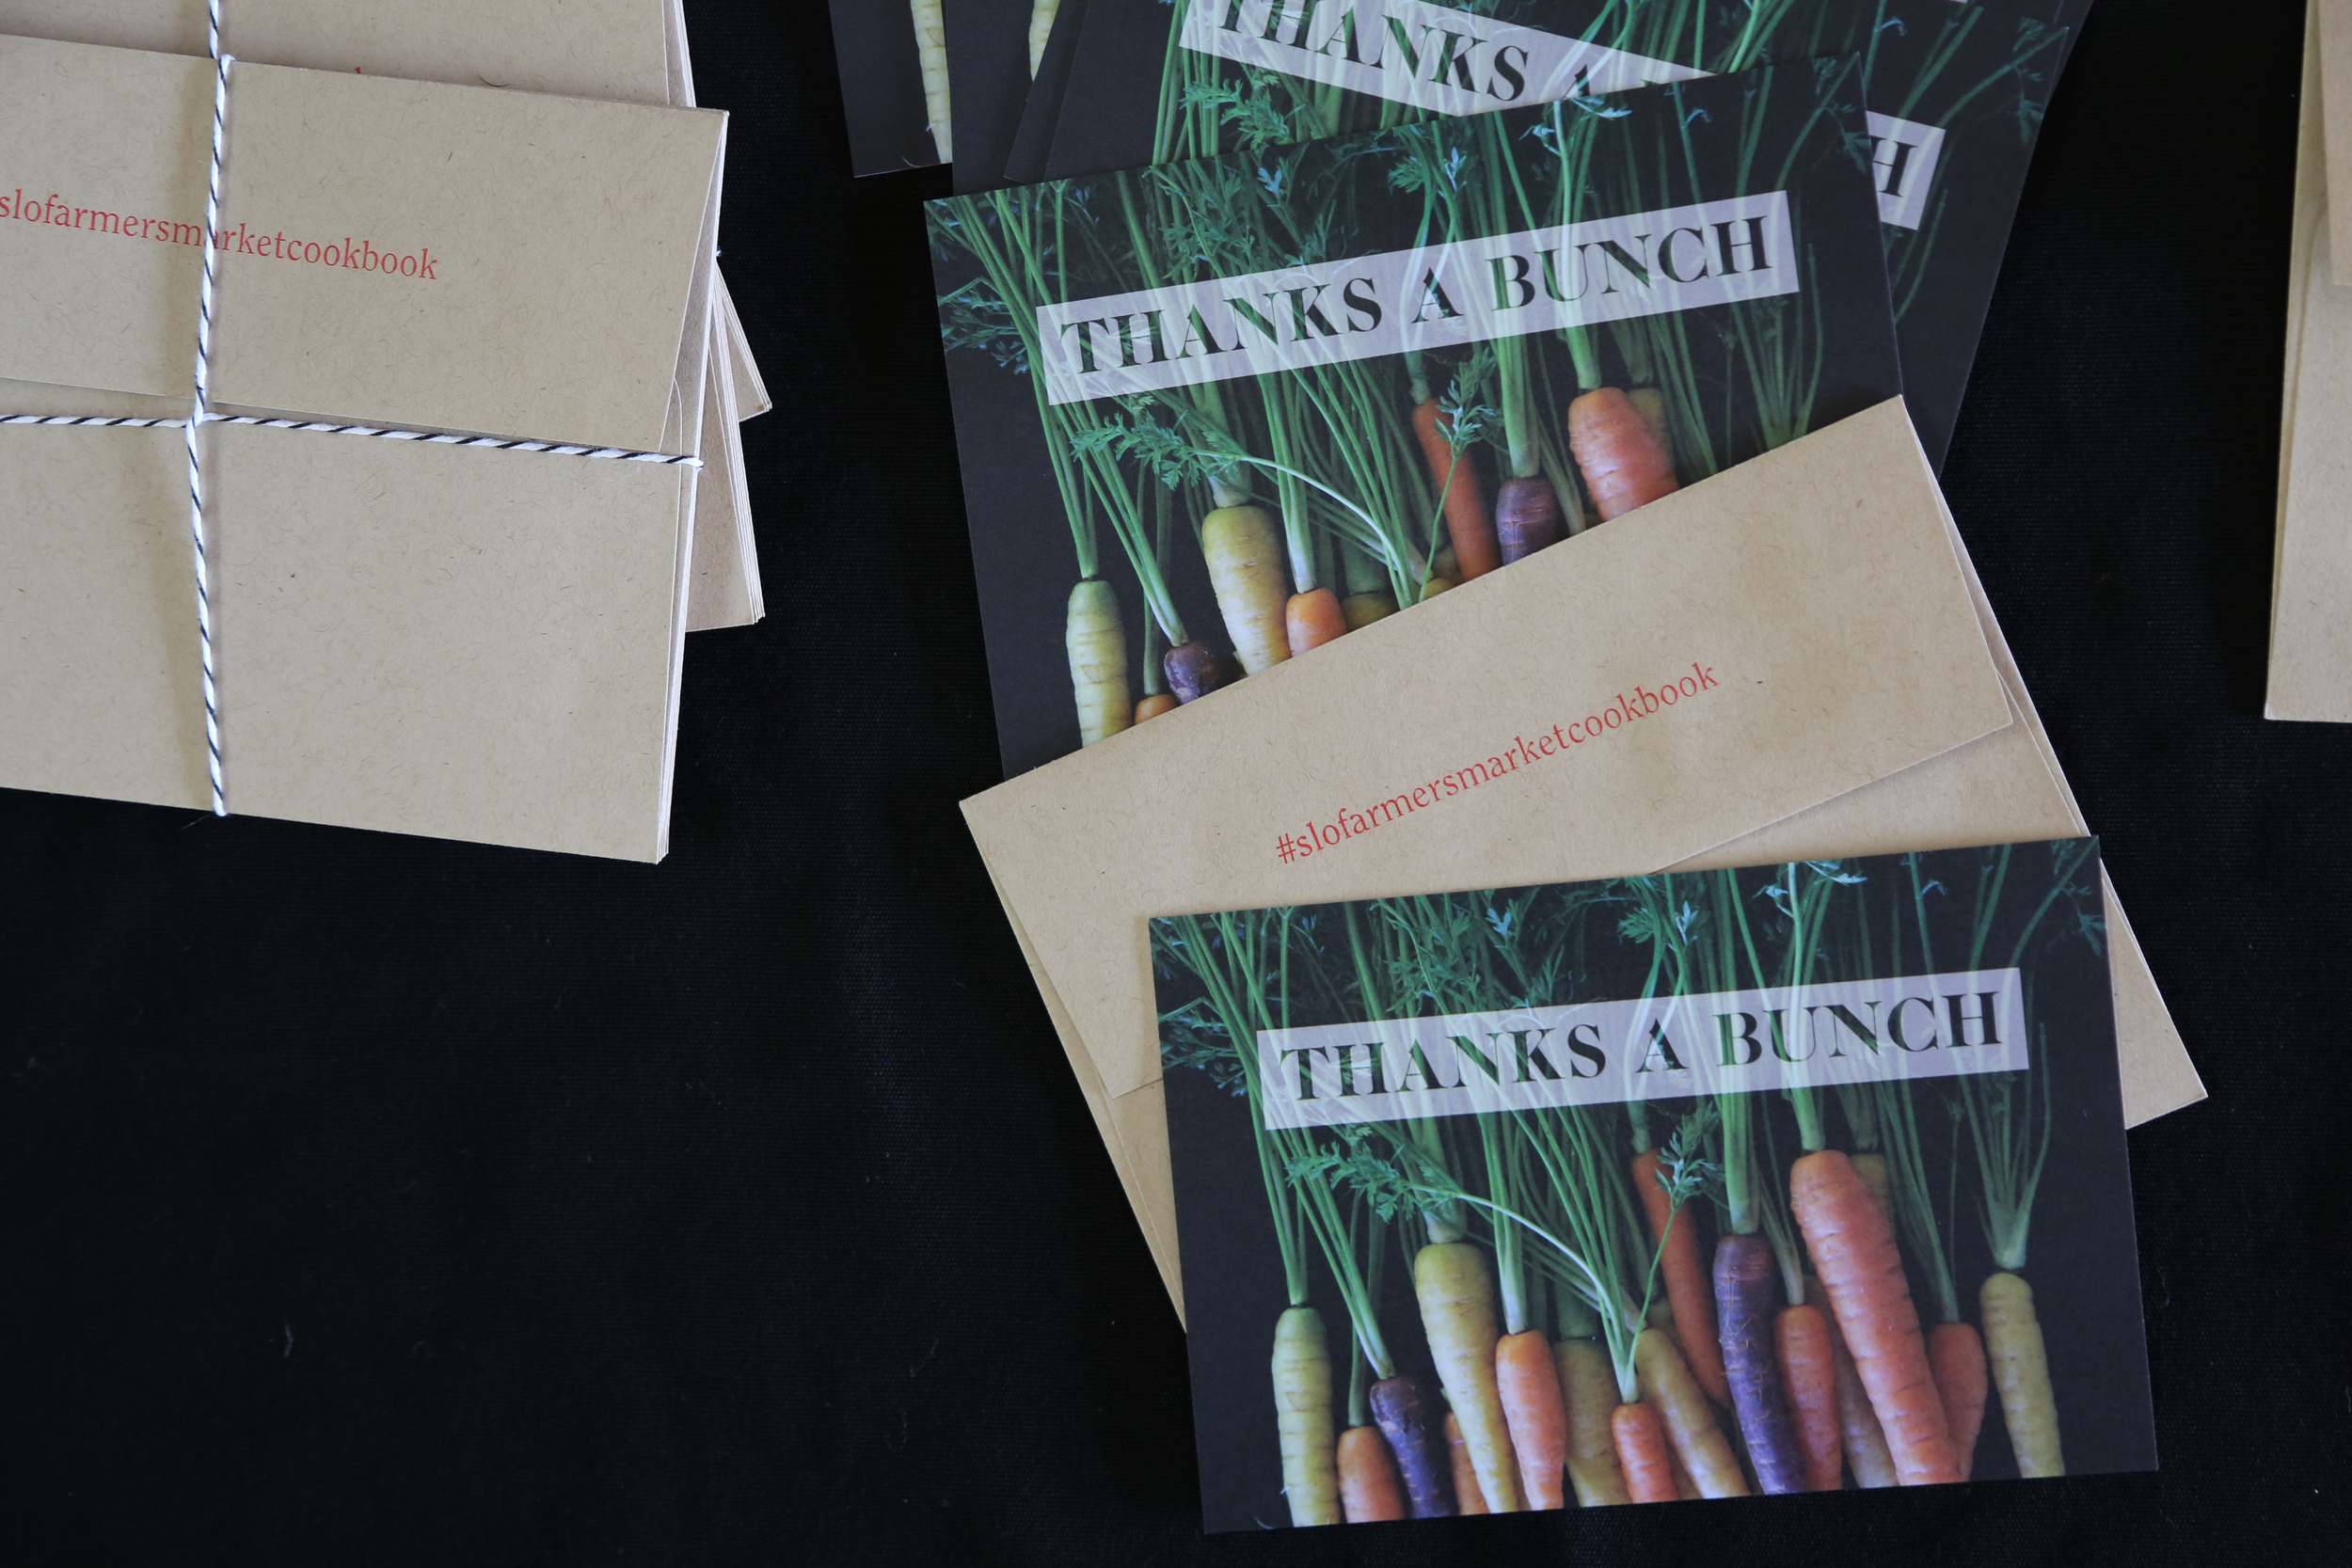 slo-farmers-cookbook-thank-you-cards